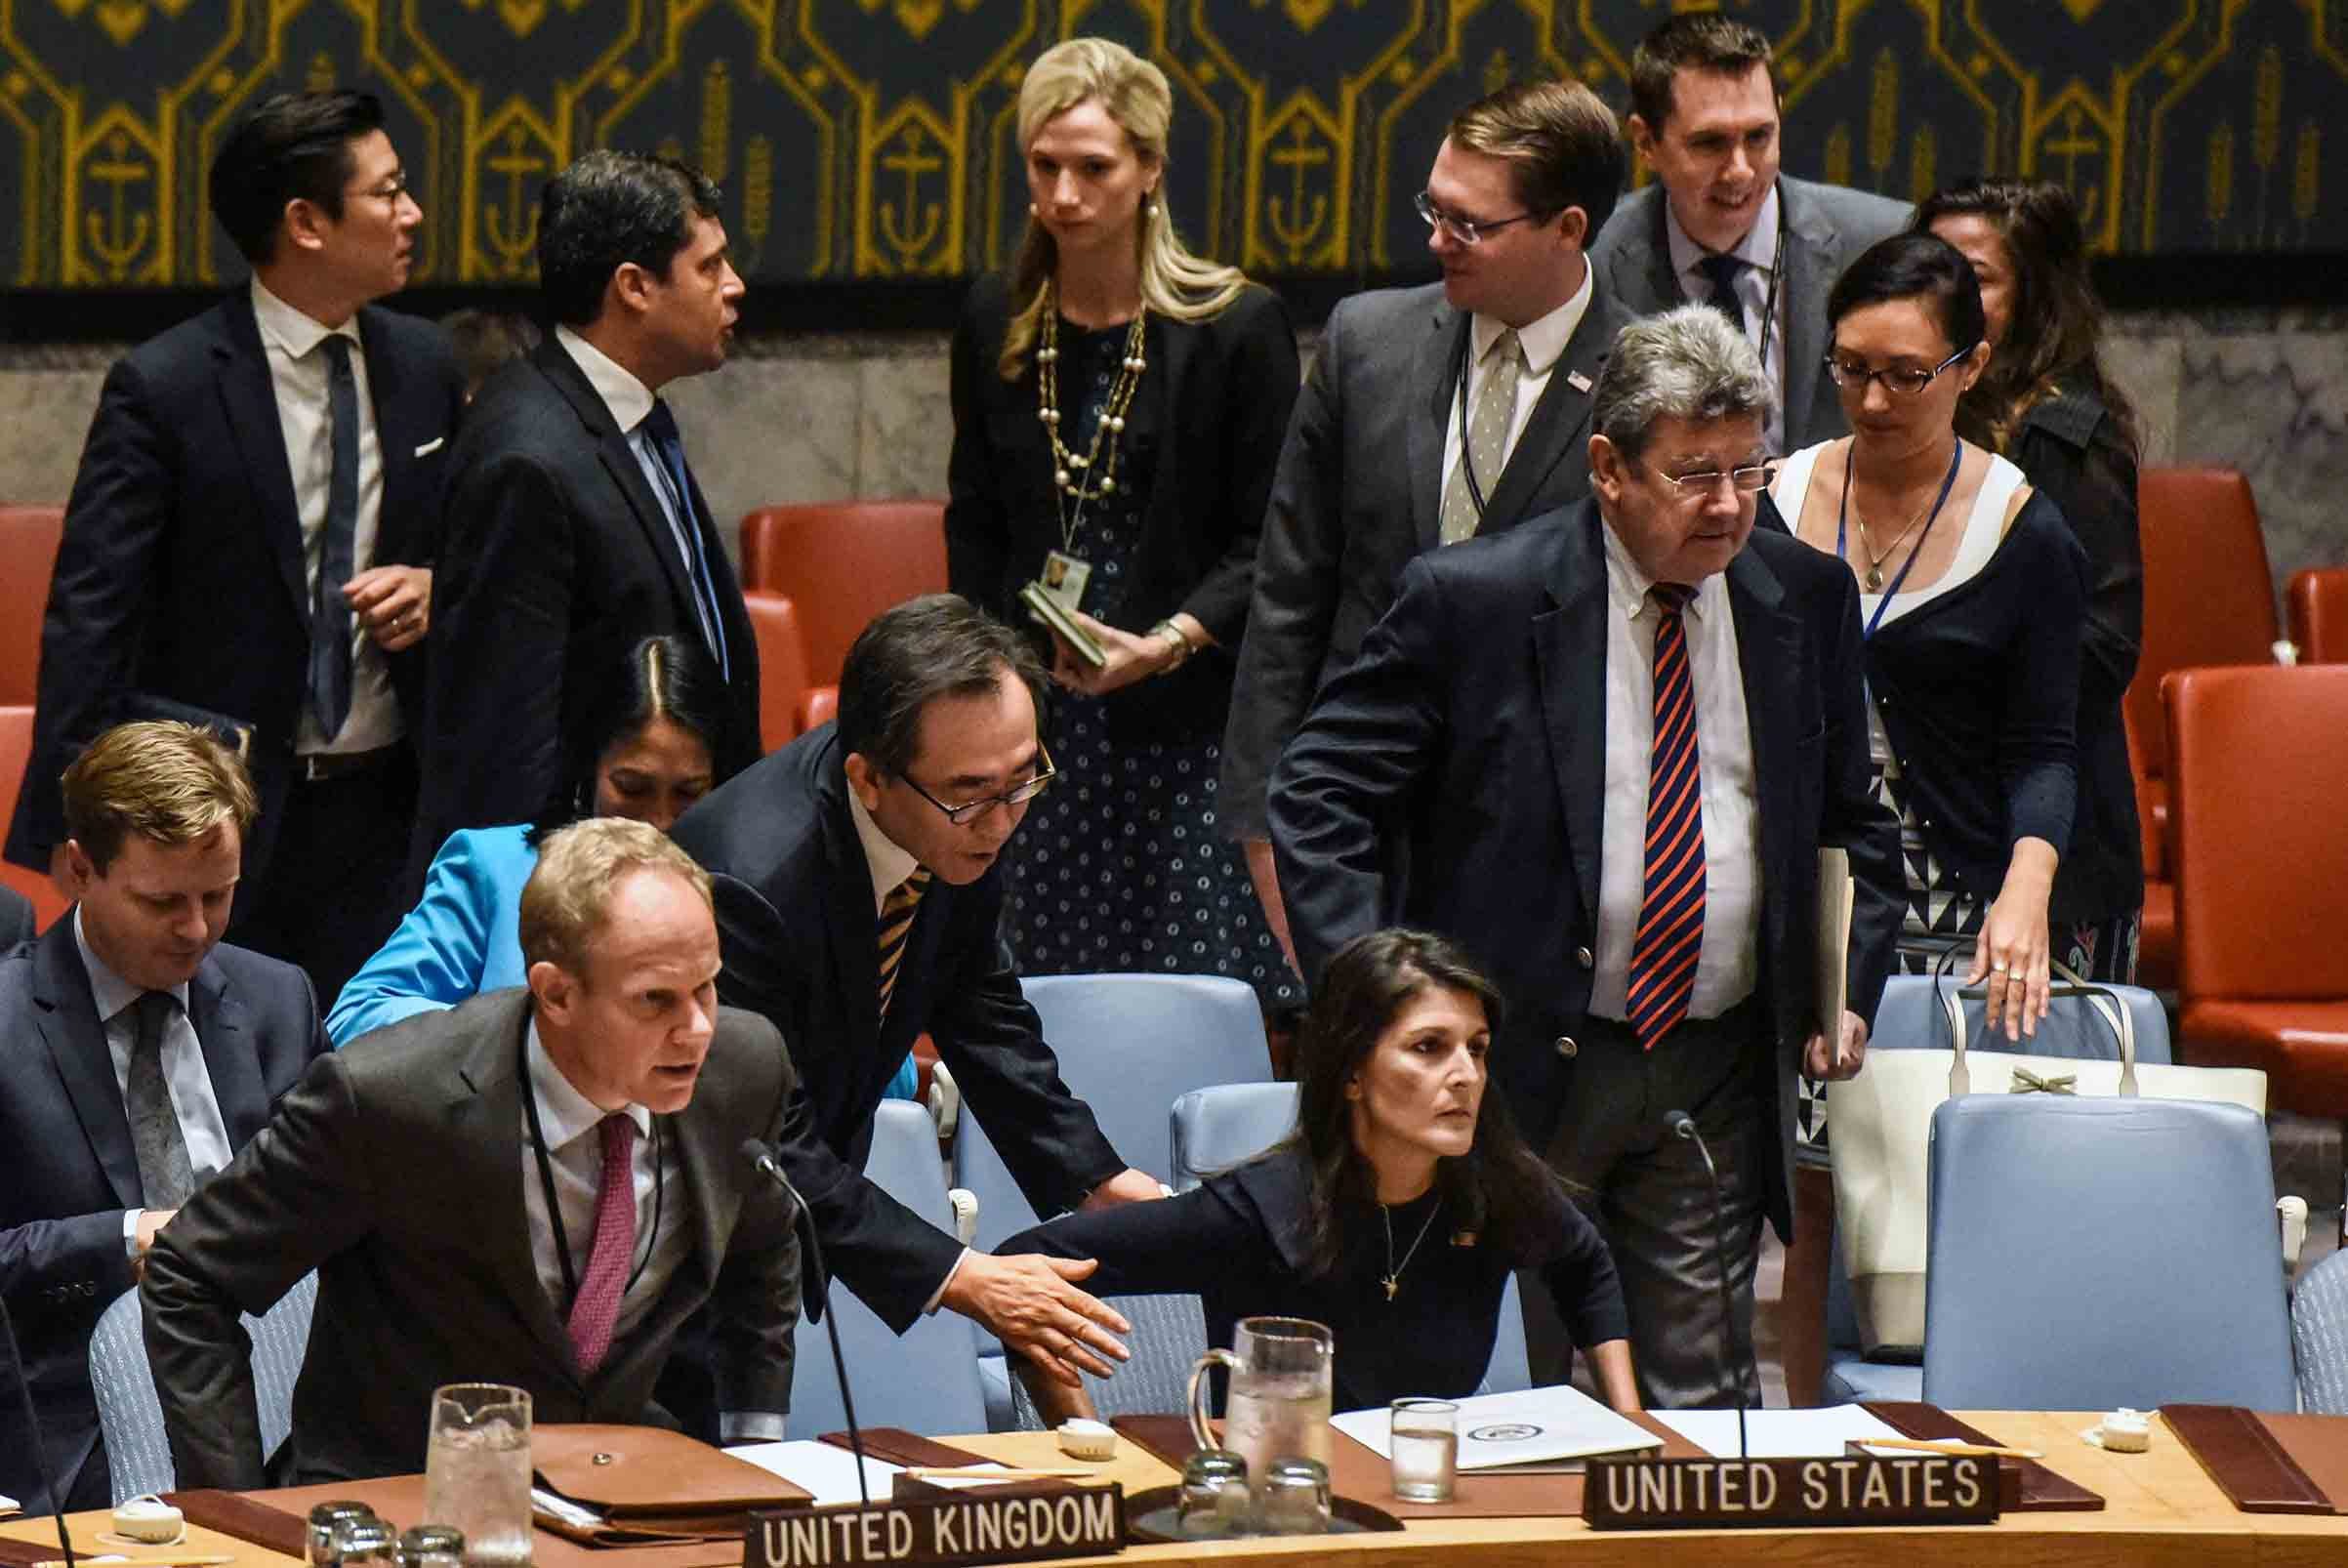 South Korean Ambassador Cho Tae-Yul tries to get the attention of Ambassador to the UN, Nikki Haley during a United Nations Security Council meeting on North Korea on Sept. 4 in New York City.